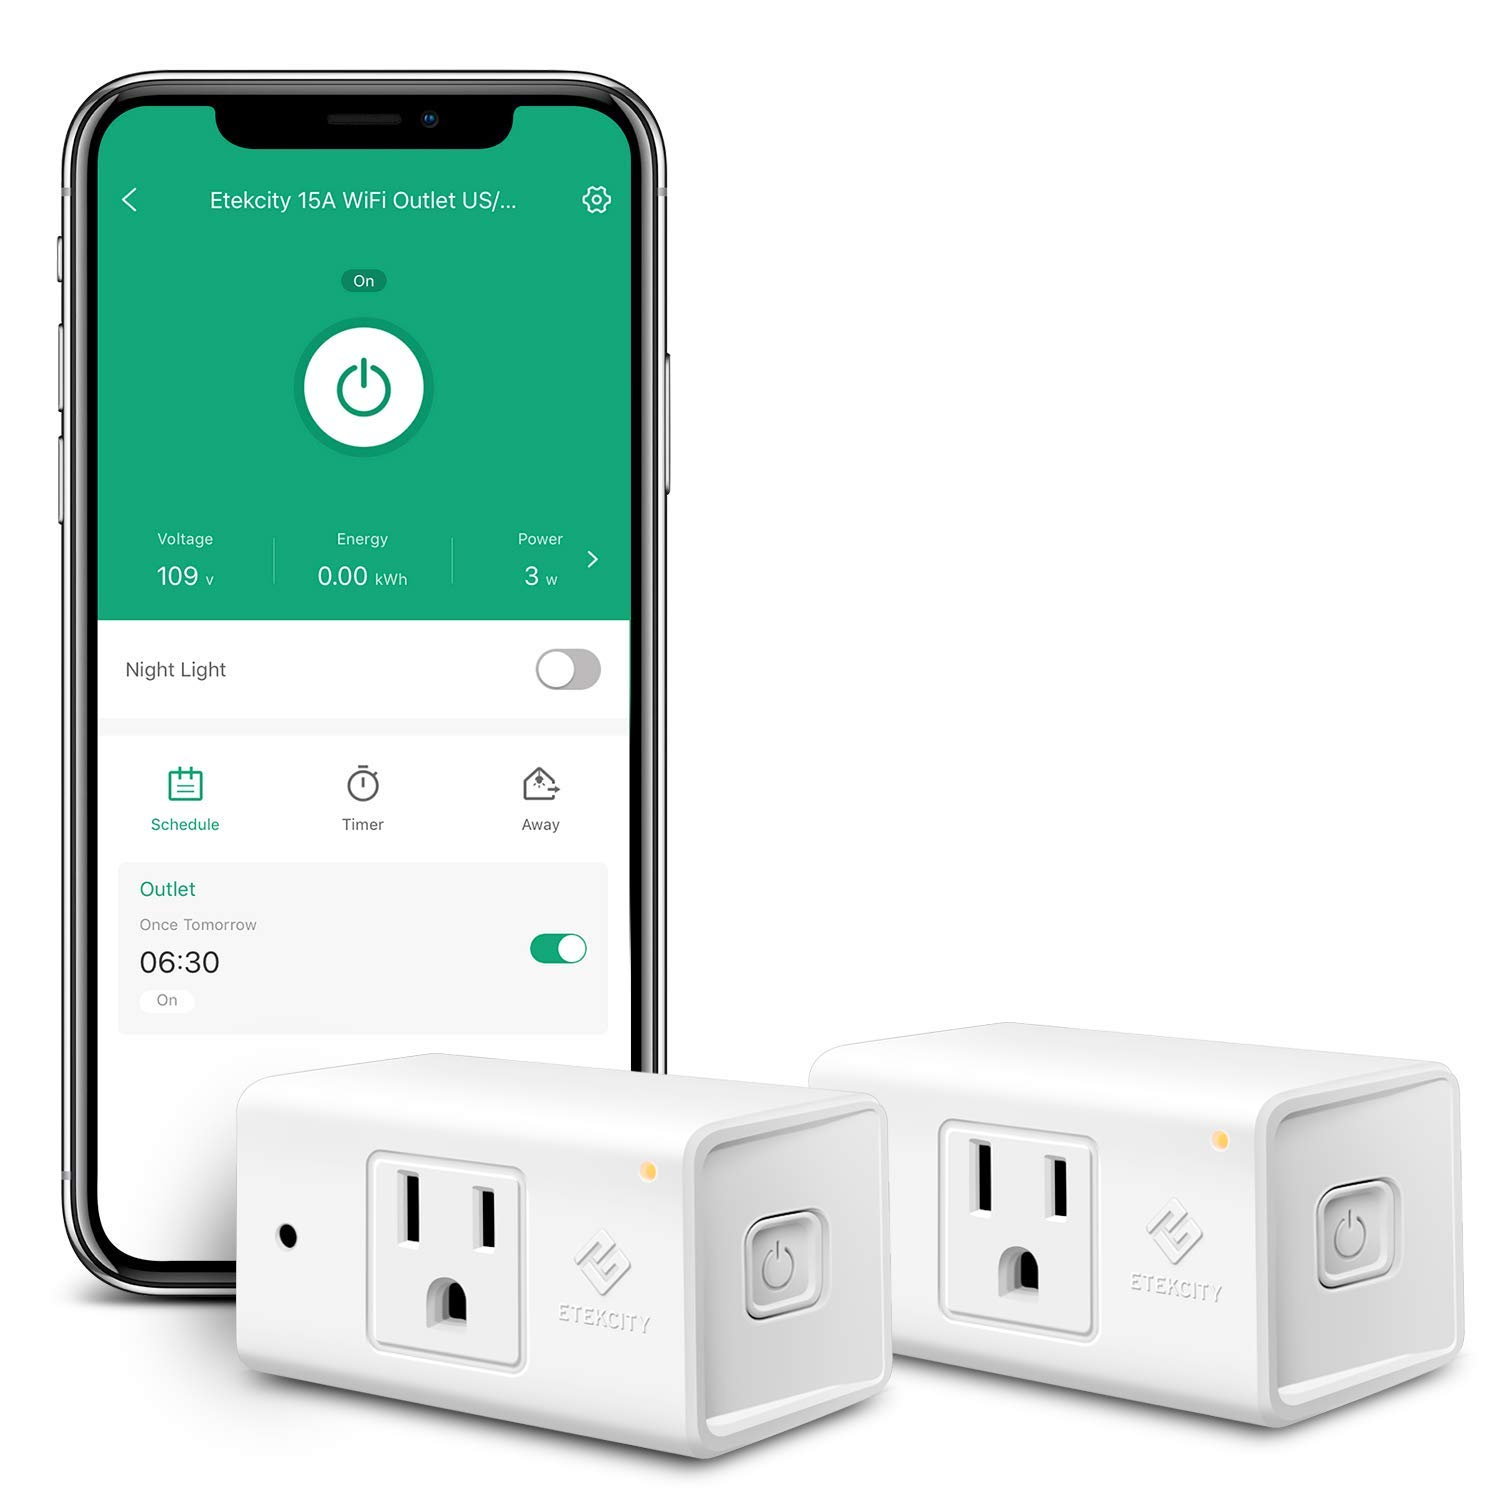 Etekcity Nightlight Smart Plug, Slim Design ESW15 WiFi Outlet (2 Pack), 15A, 1800w, With Overheat Protection, ETL Listed, Compatible with Alexa and Google Assistant, White